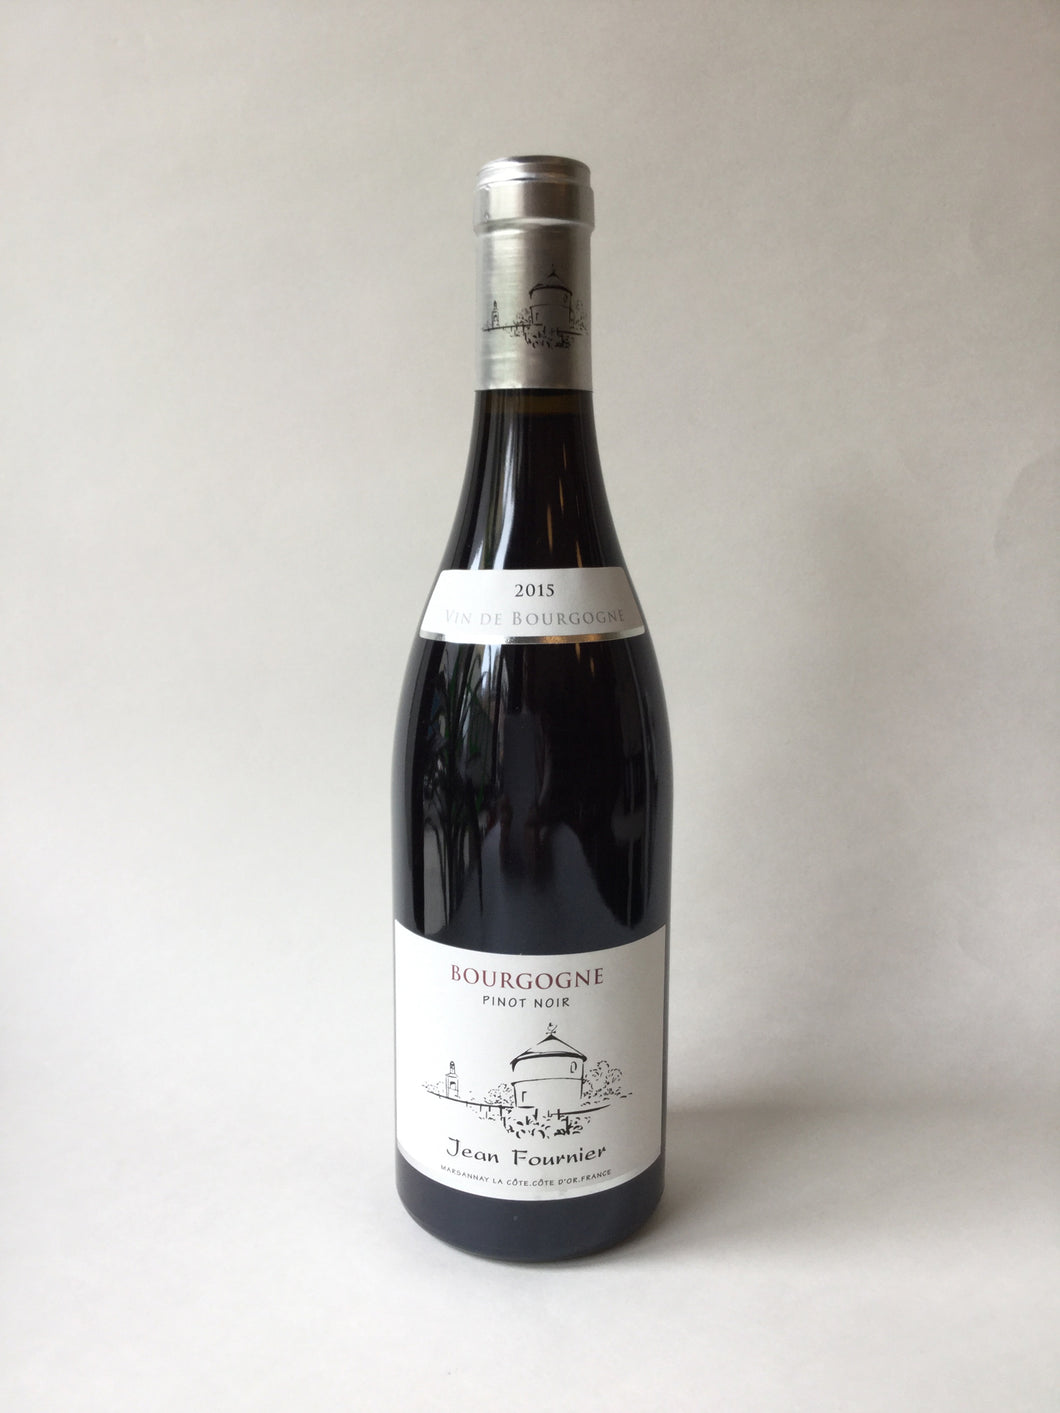 Jean Fournier Bourgogne Pinot Noir 2015, 750ml - Frankly Wines